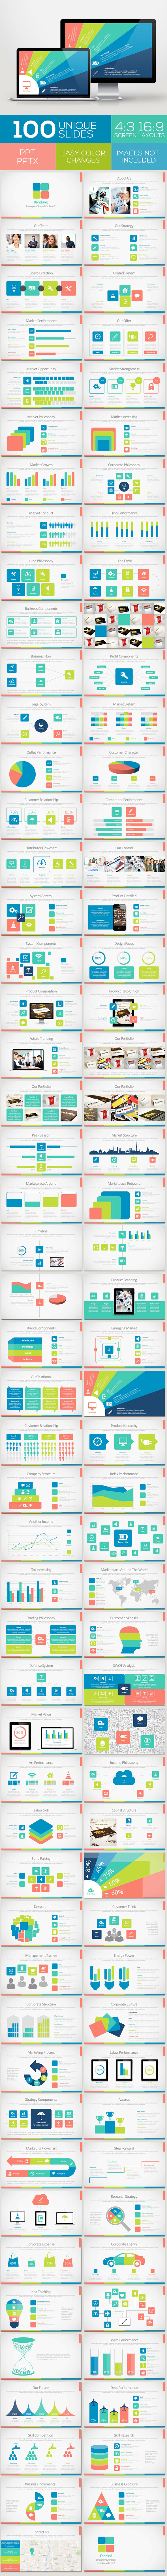 Bandung Powerpoint Template Volume 2 - Business PowerPoint Templates